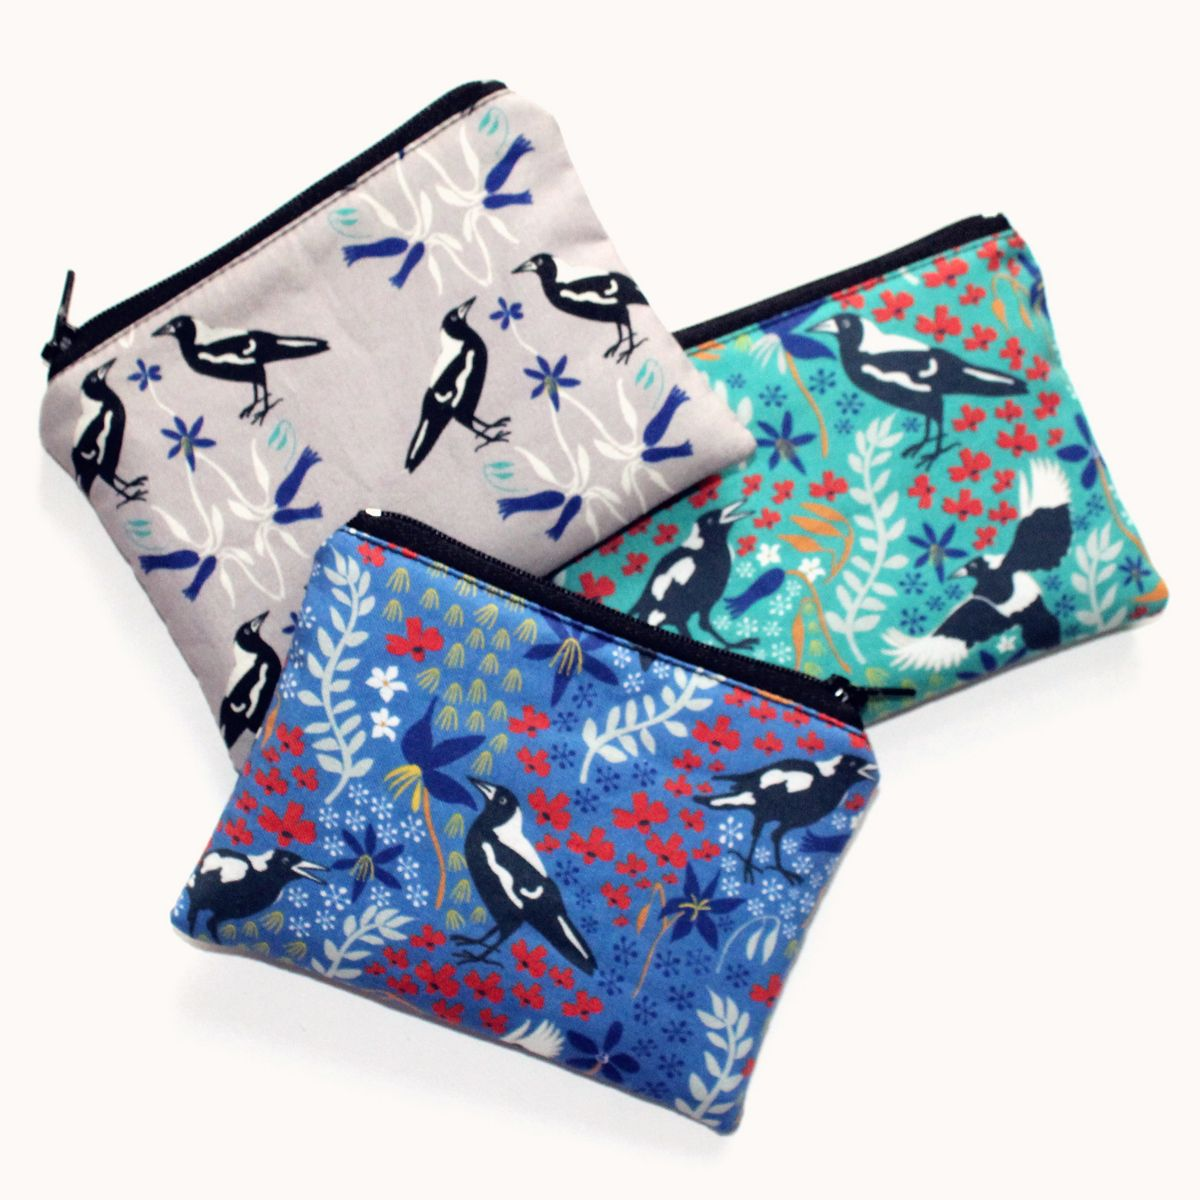 Neddynibbles coin pouches in Karen's favourite magpie prints